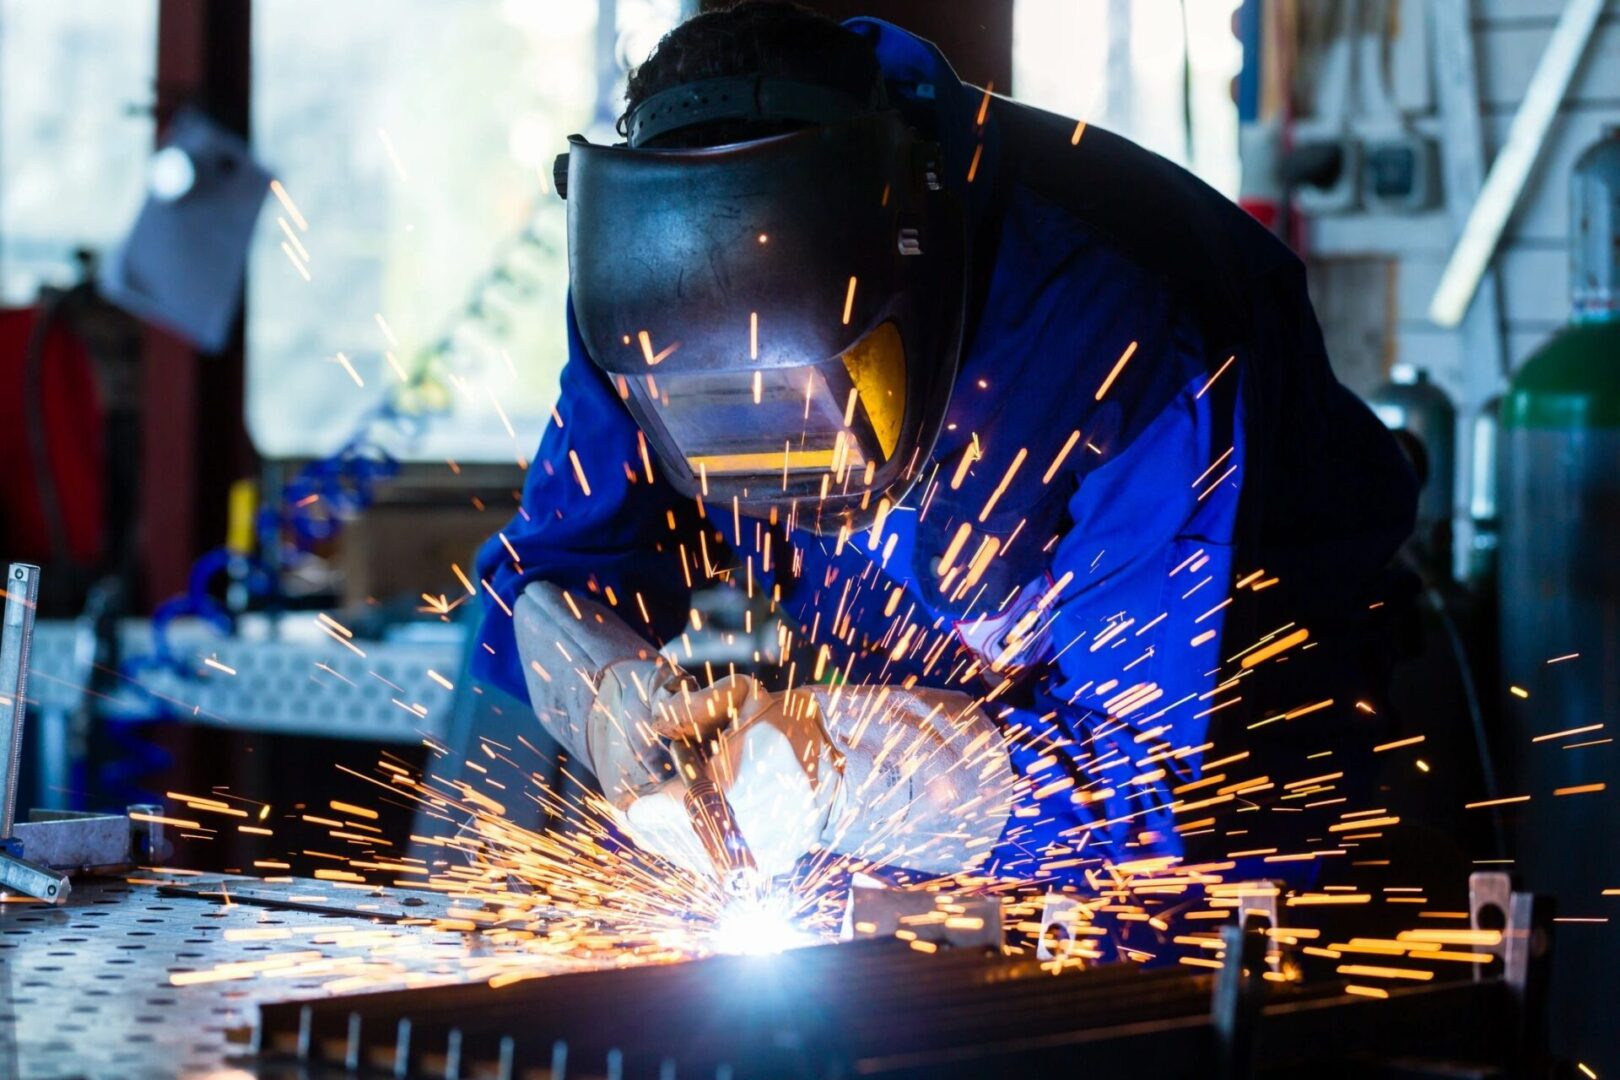 Custom Metal Fabricators, Inc. is a leading metal fabricator company in Lake Charles, LA. We offer high-quality, custom-made metal fabrication products and services to petroleum, petrochemical, paper and drilling companies. We use high-quality metal for all our products and services. Contact us today.